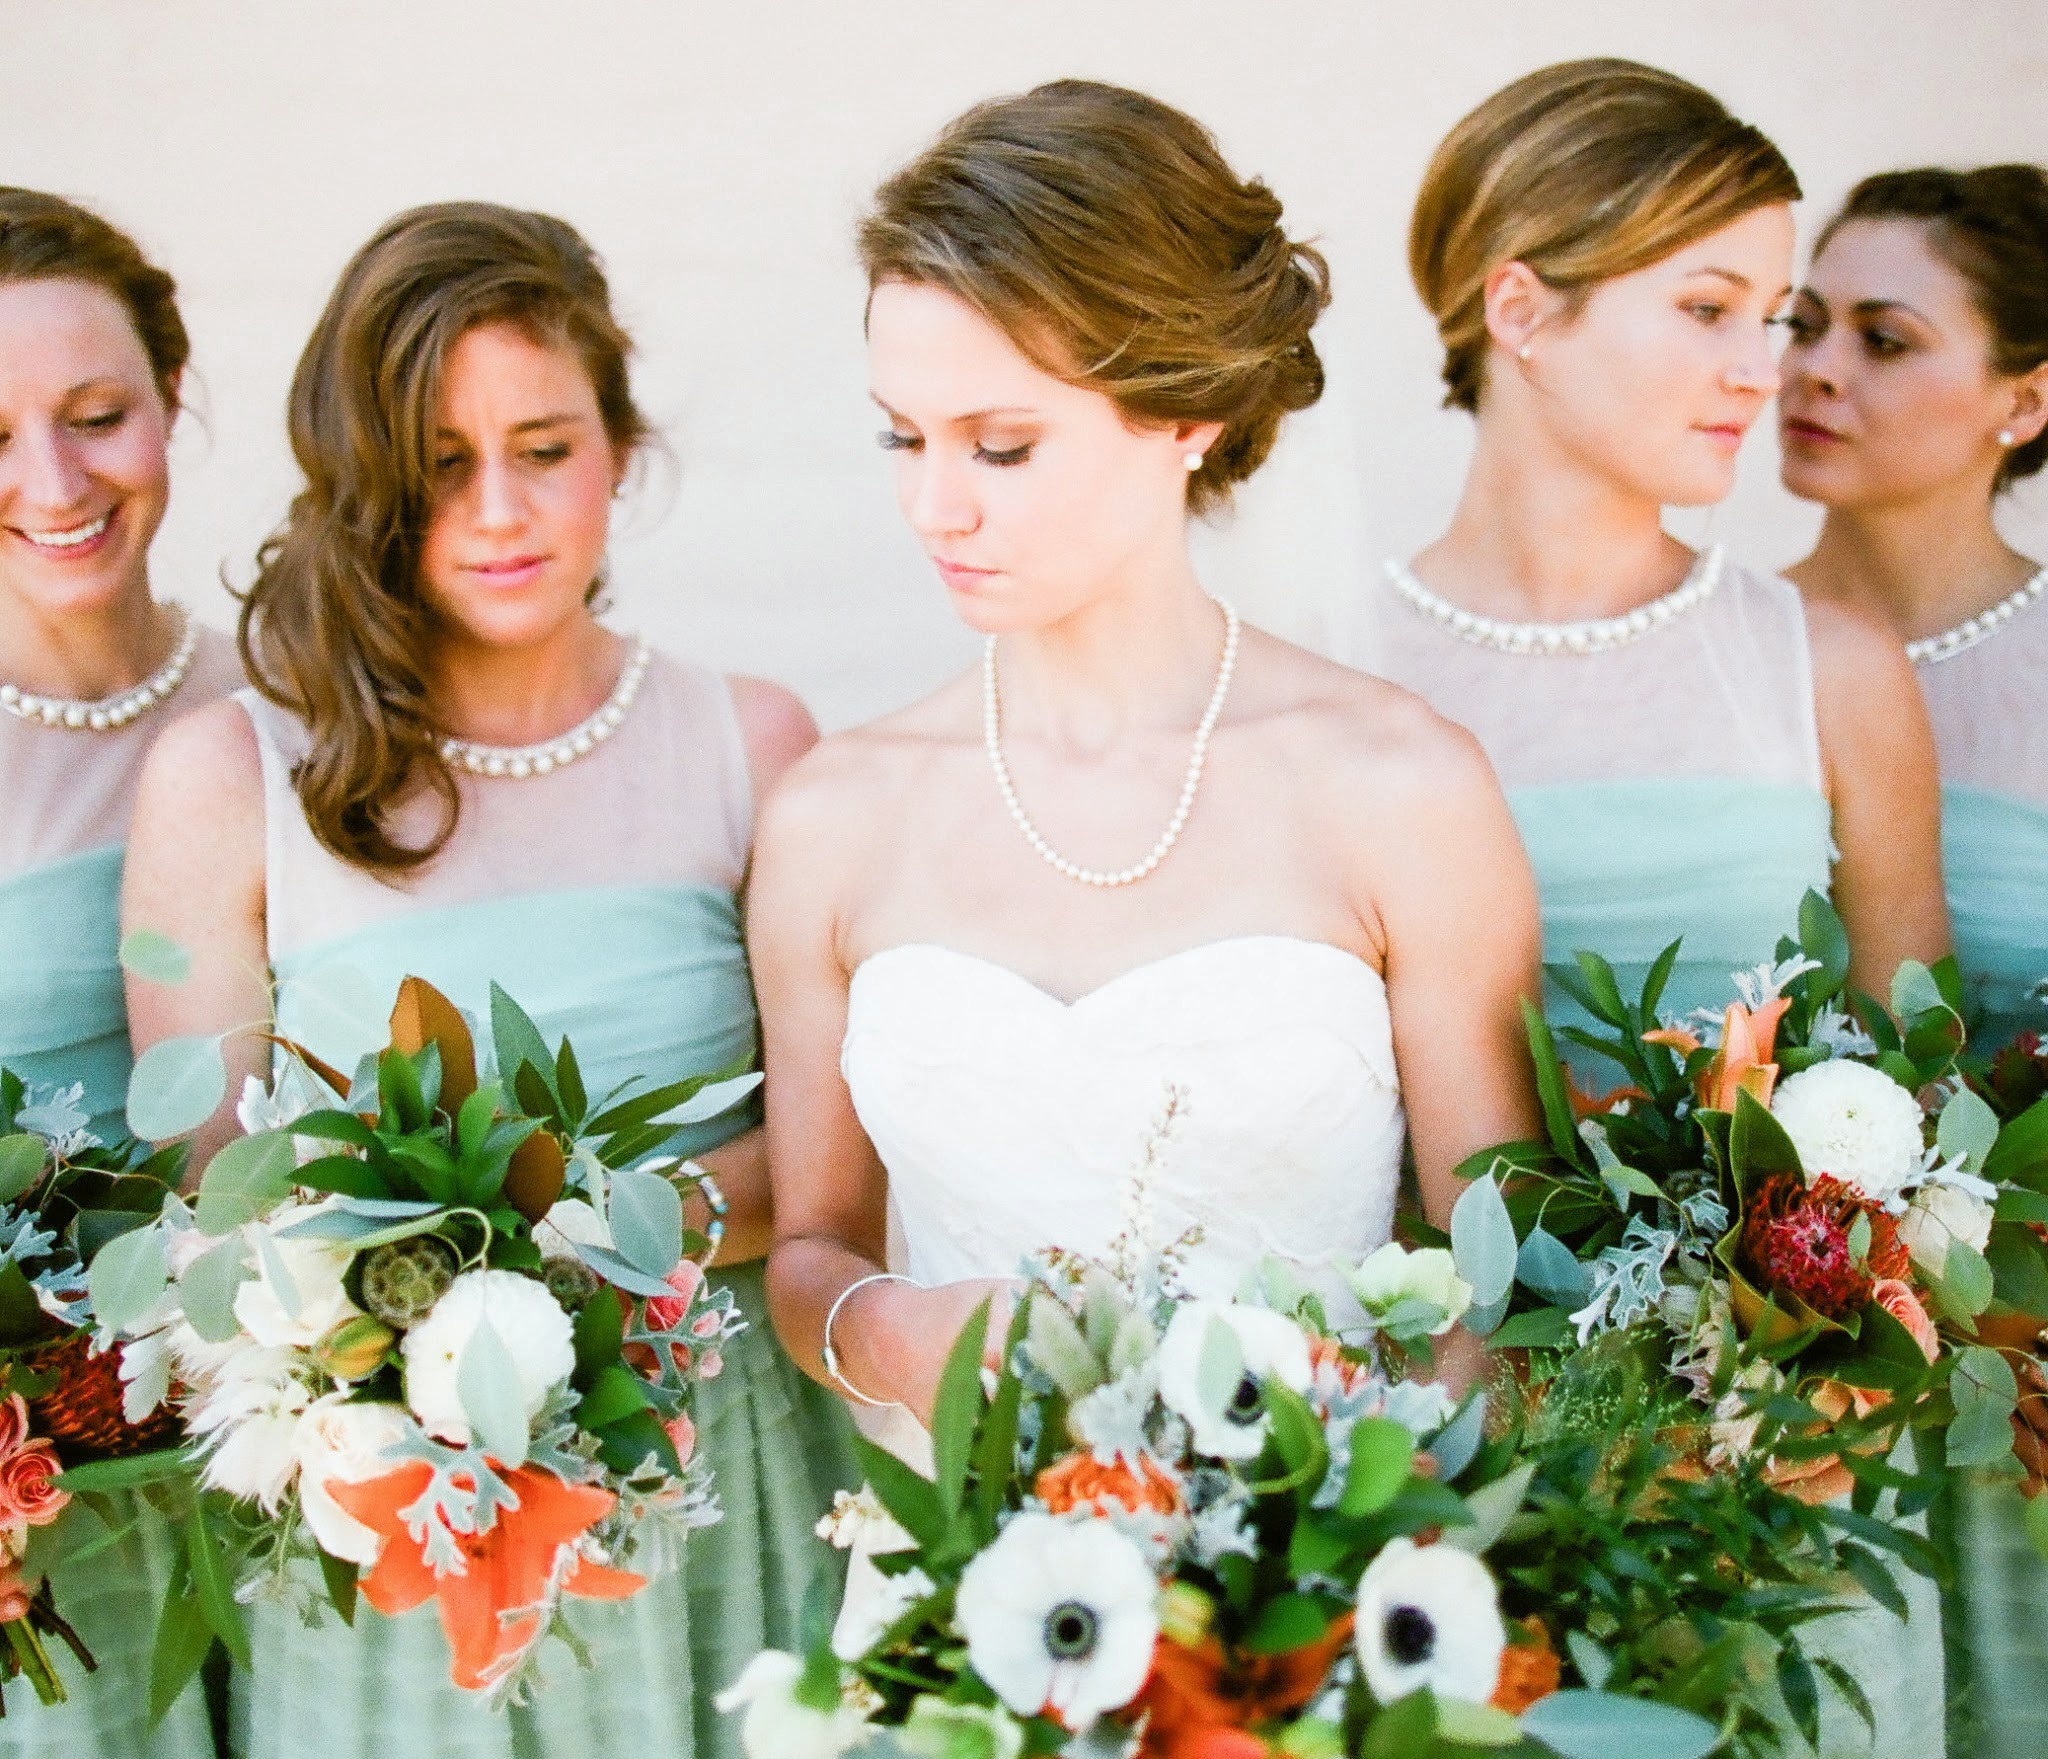 www.felicievents.com | Felici Events | Historical Museum Wedding | Eclectic Orange Wedding | Teal Bridesmaids Dresses